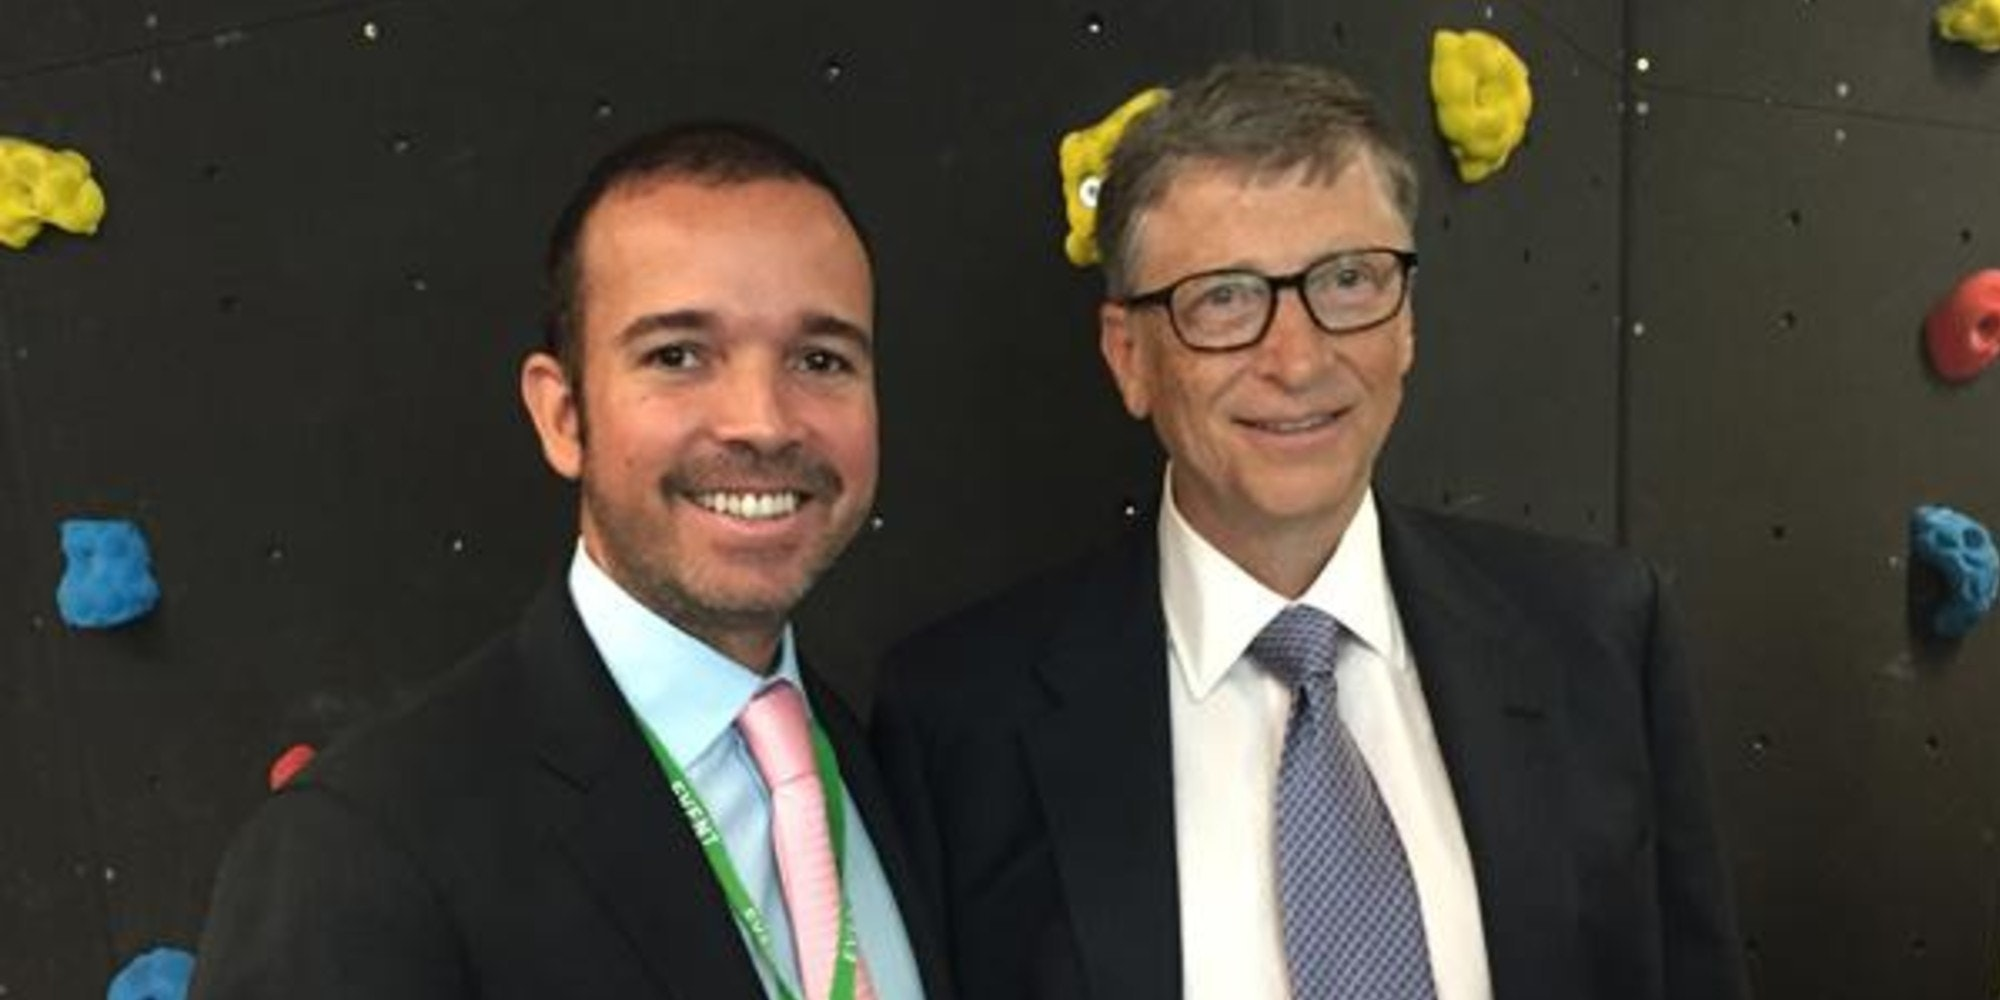 Conspiracy theorists are tying Bill Gates to alleged voter fraud after 2015 photo resurfaces